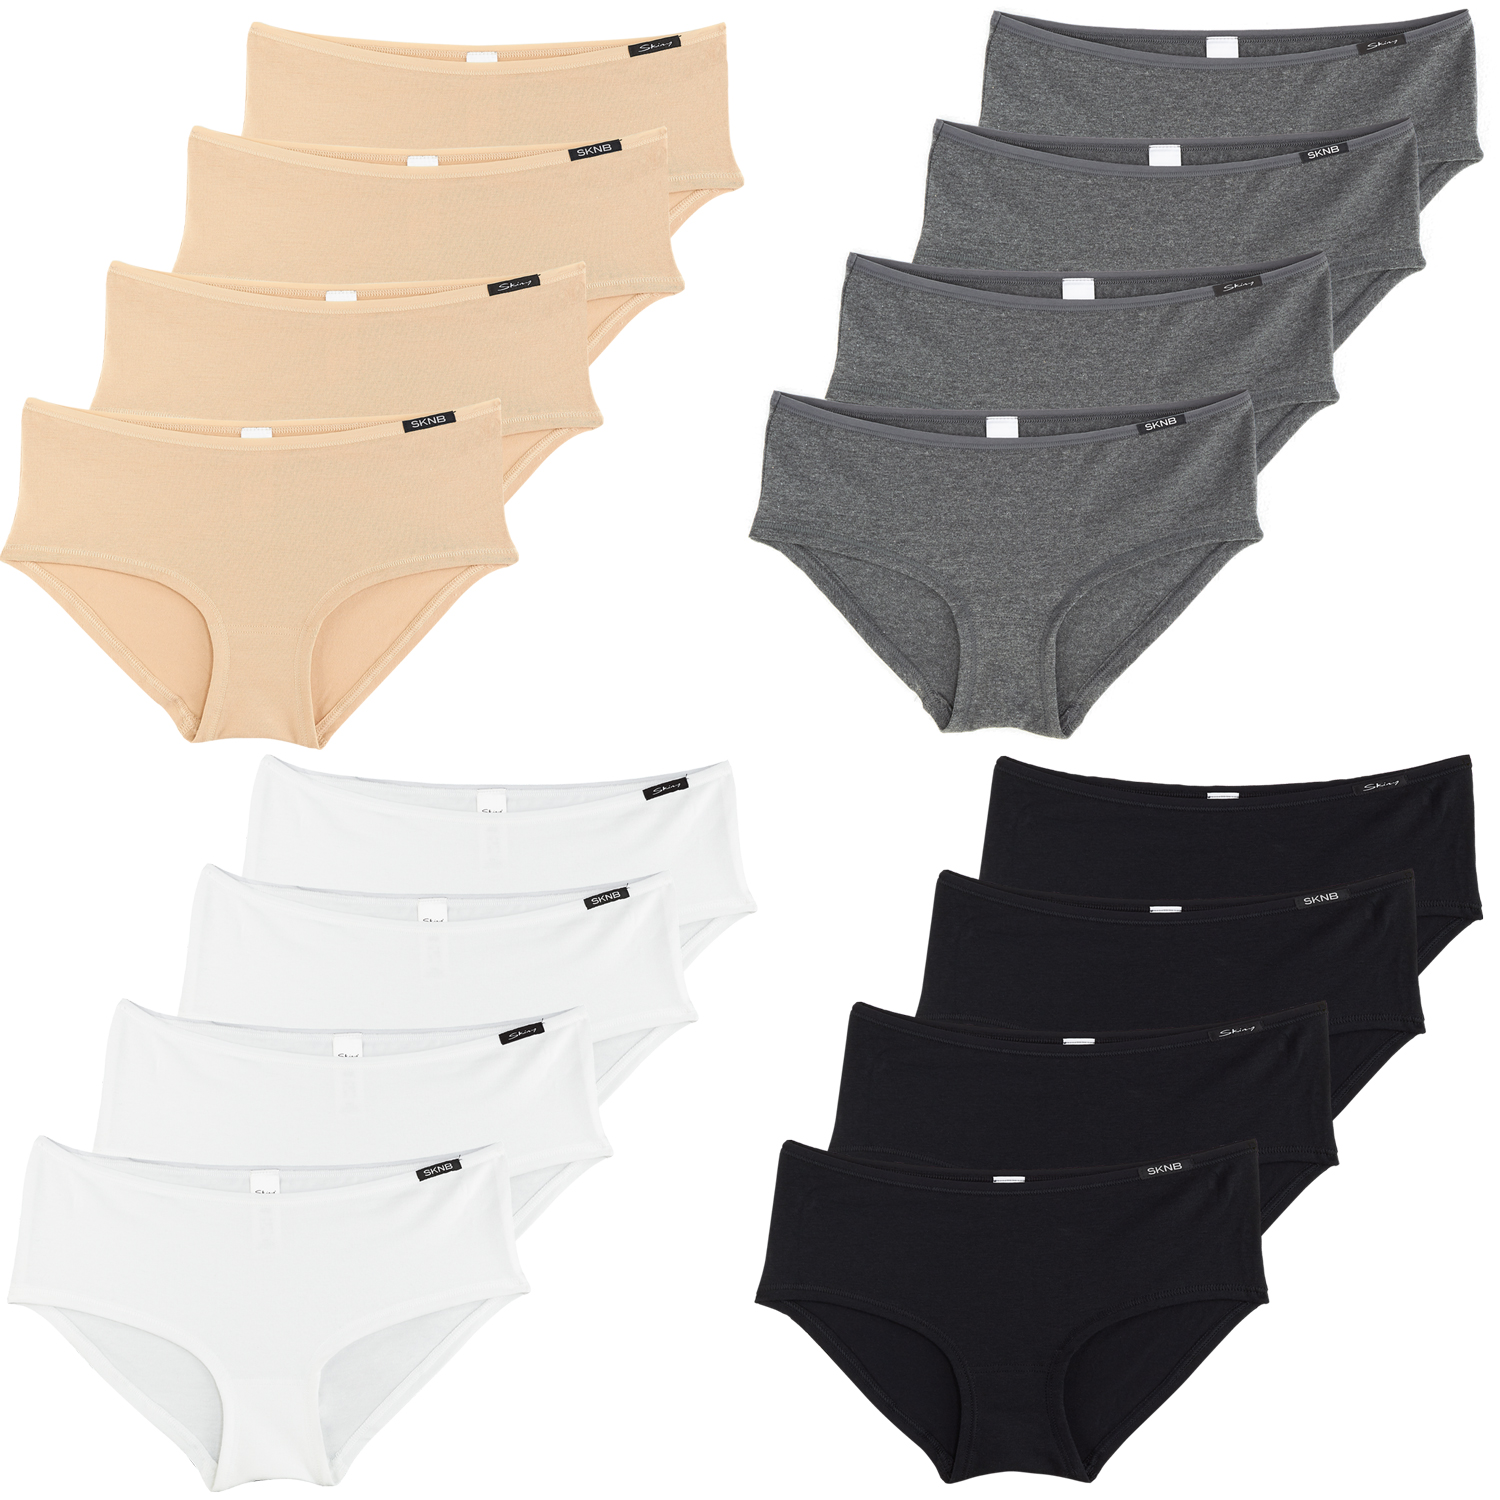 Skiny Damen Panty Advantage Cotton, 2 x 2er Pack – Bild 1